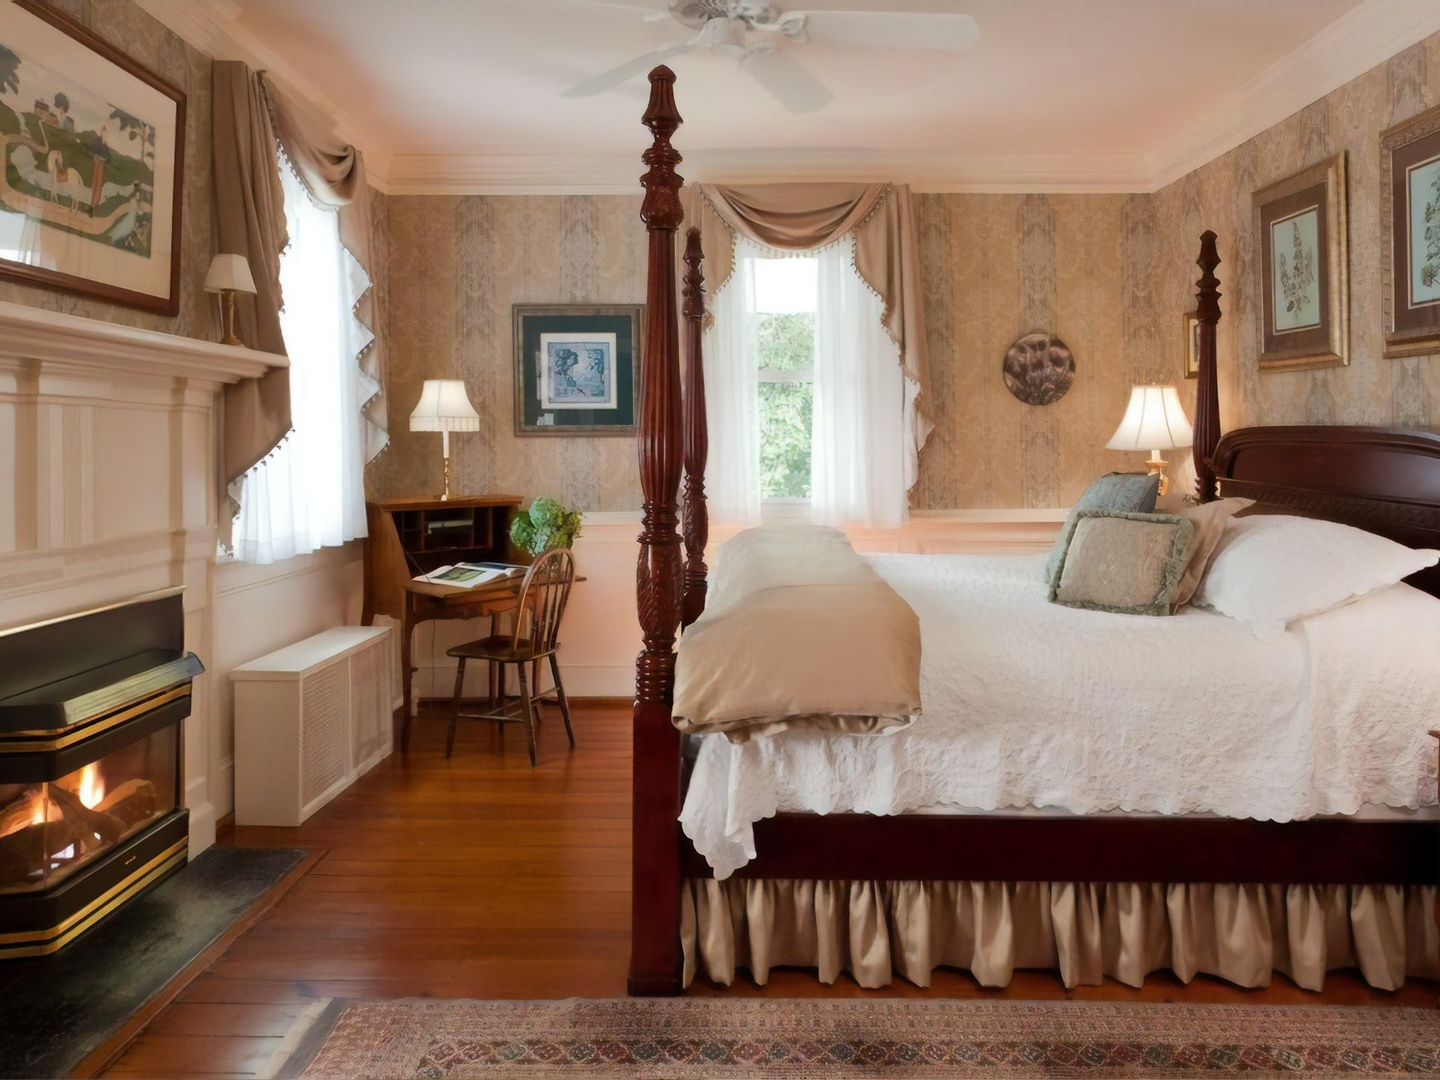 A bedroom with a large bed in a room at Arrowhead Inn.